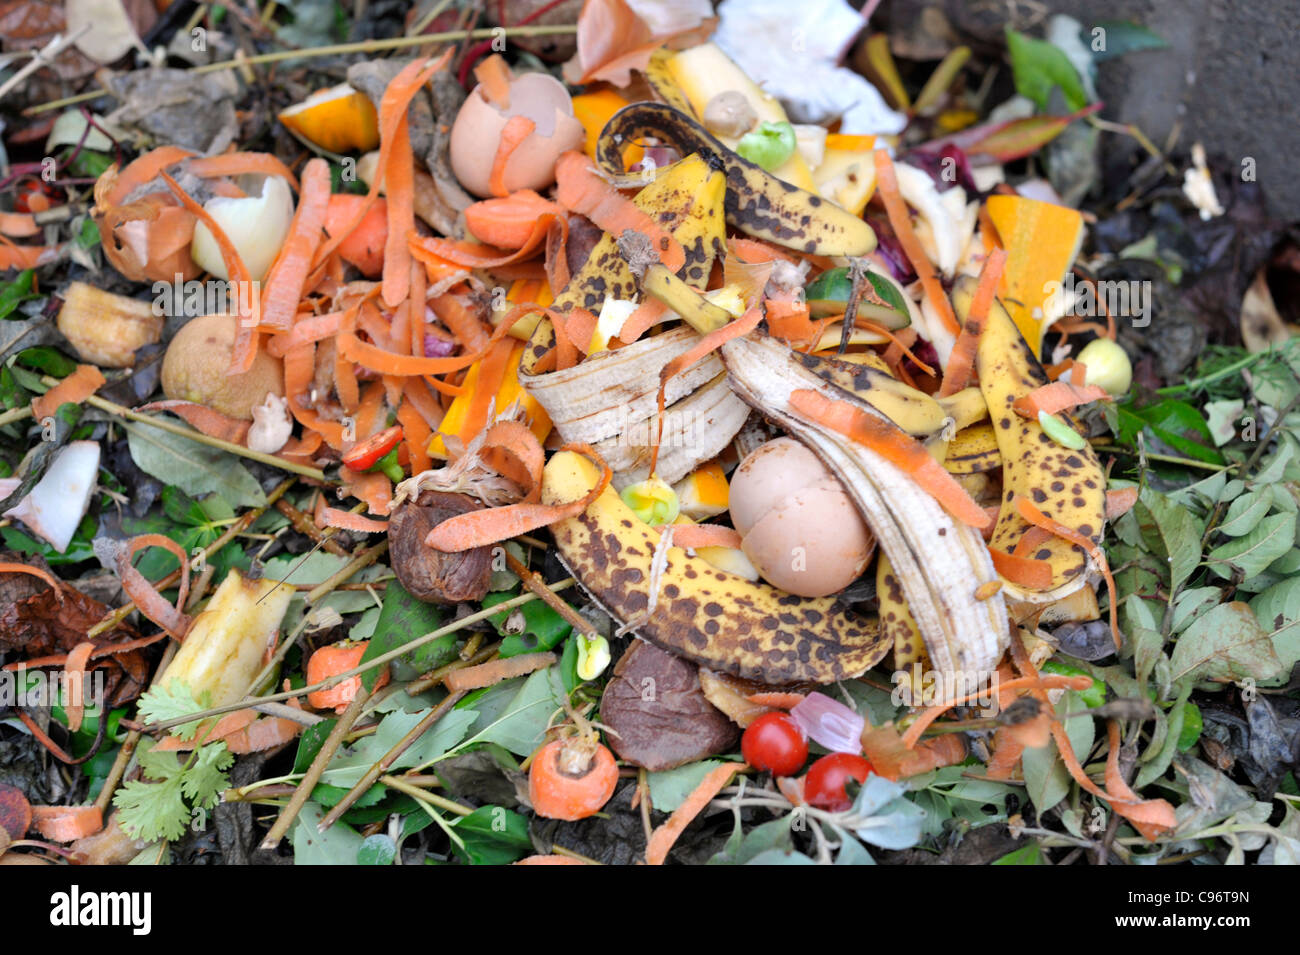 Garden Compost Heap With Plant Material And Kitchen Waste Stock